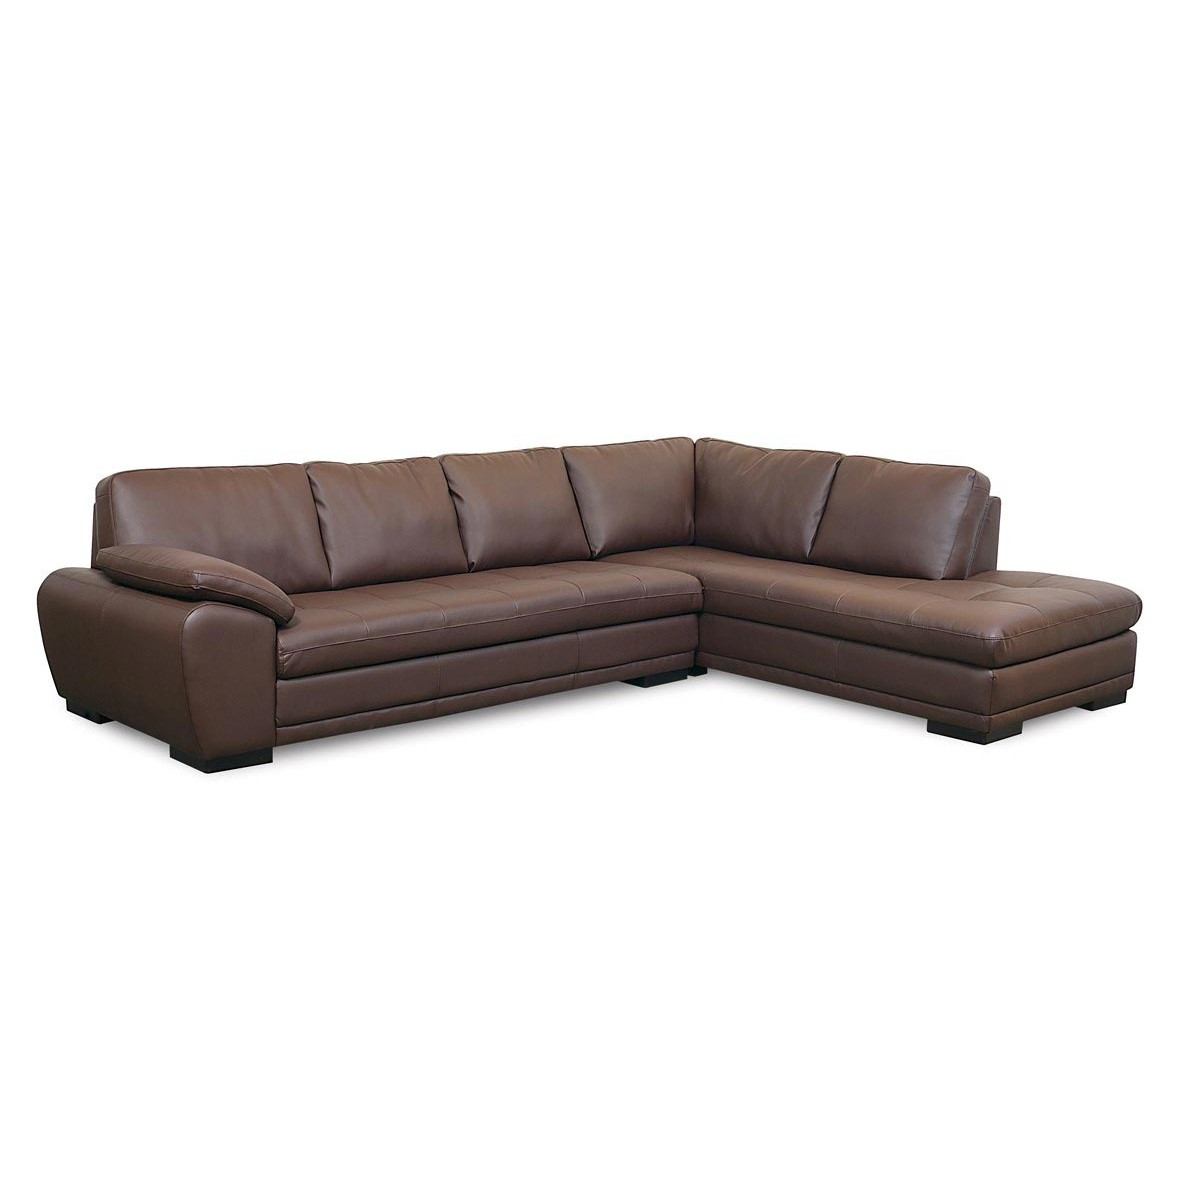 Incredible Palliser Miami Sectional Caraccident5 Cool Chair Designs And Ideas Caraccident5Info